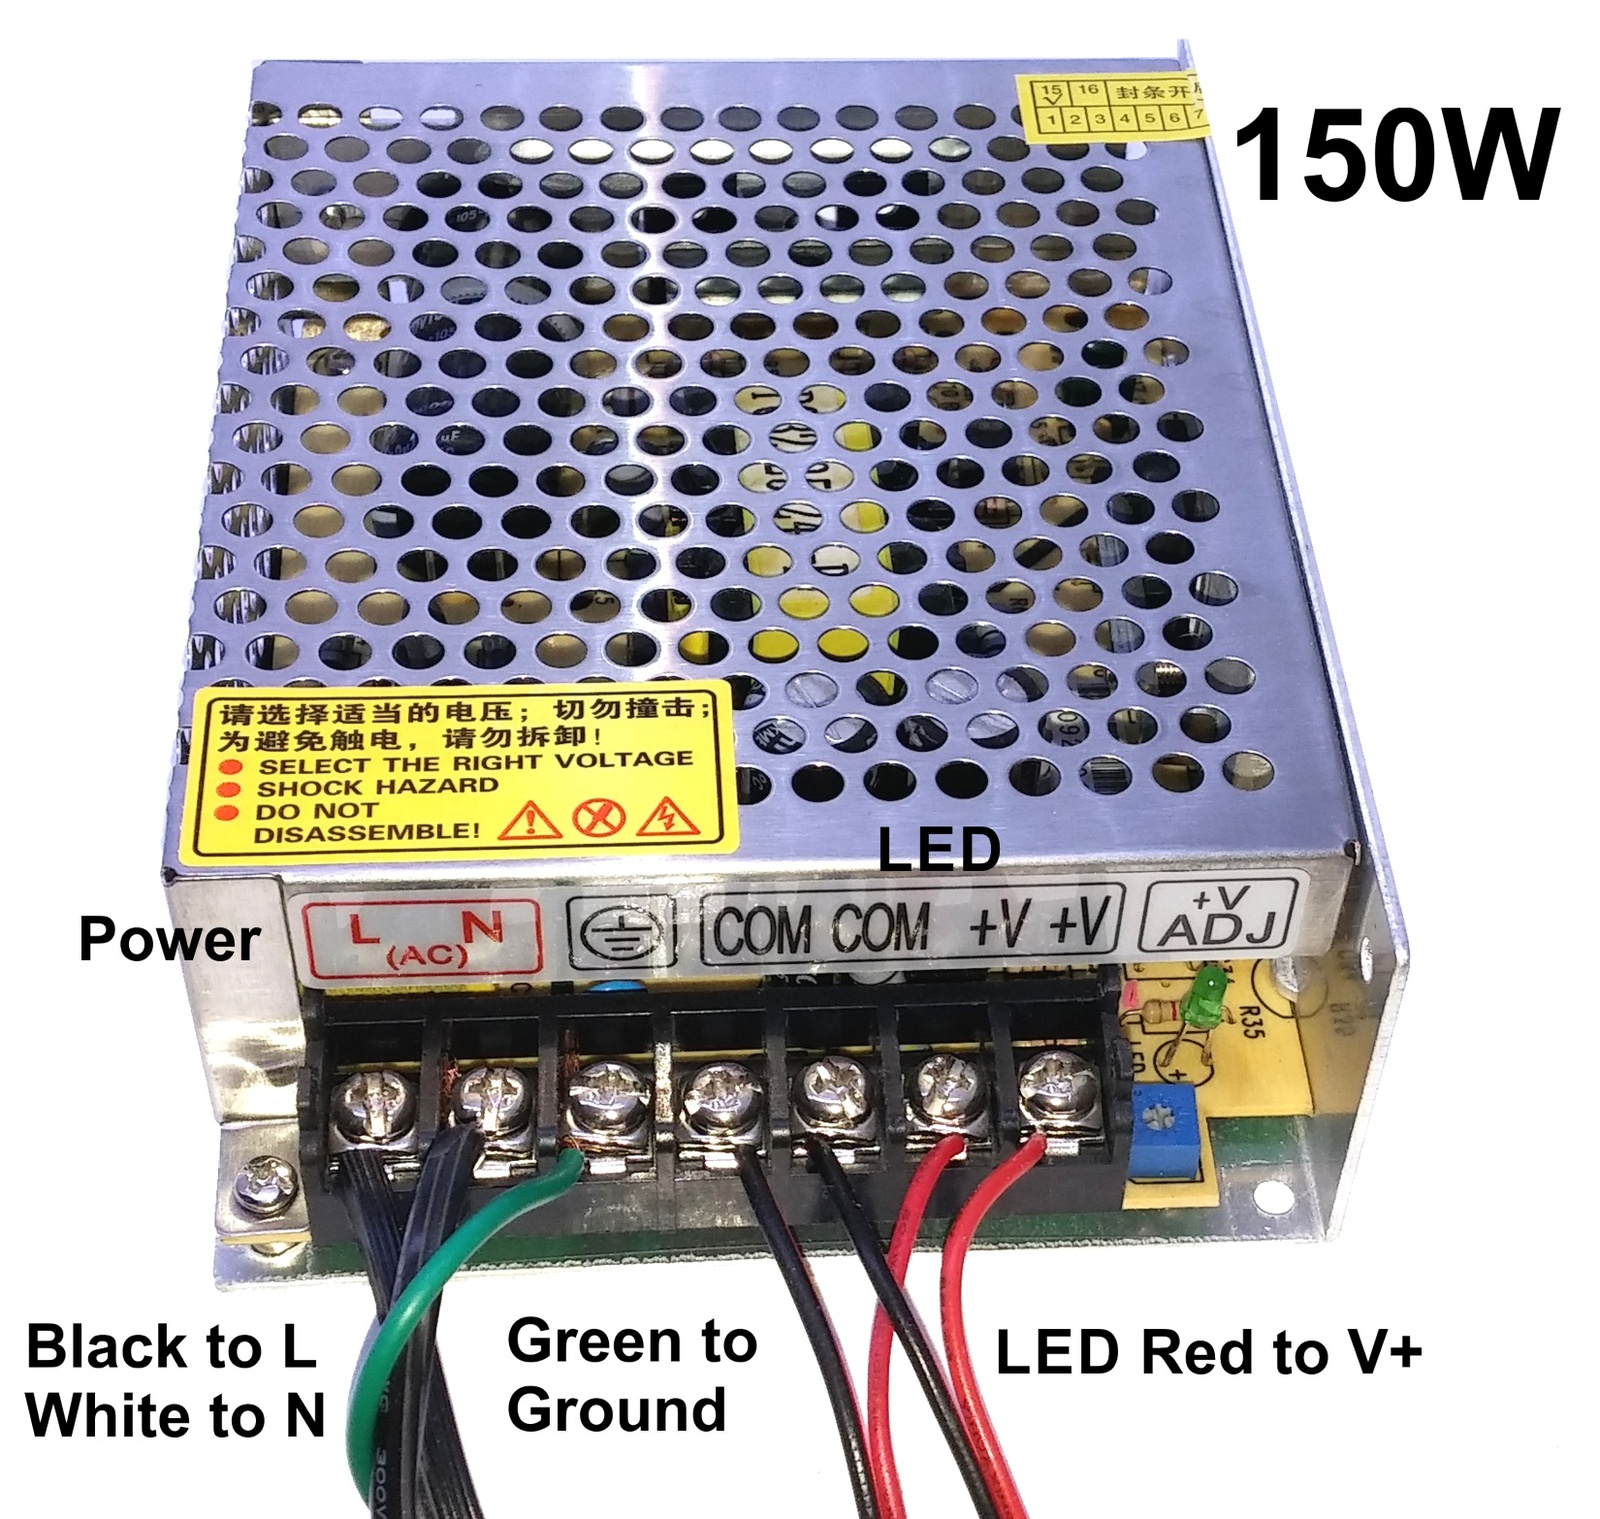 Kit: 150W Power Supply+ 2x 16' LED Strips, Bright White, Hi-Lumen, Hi-Eff